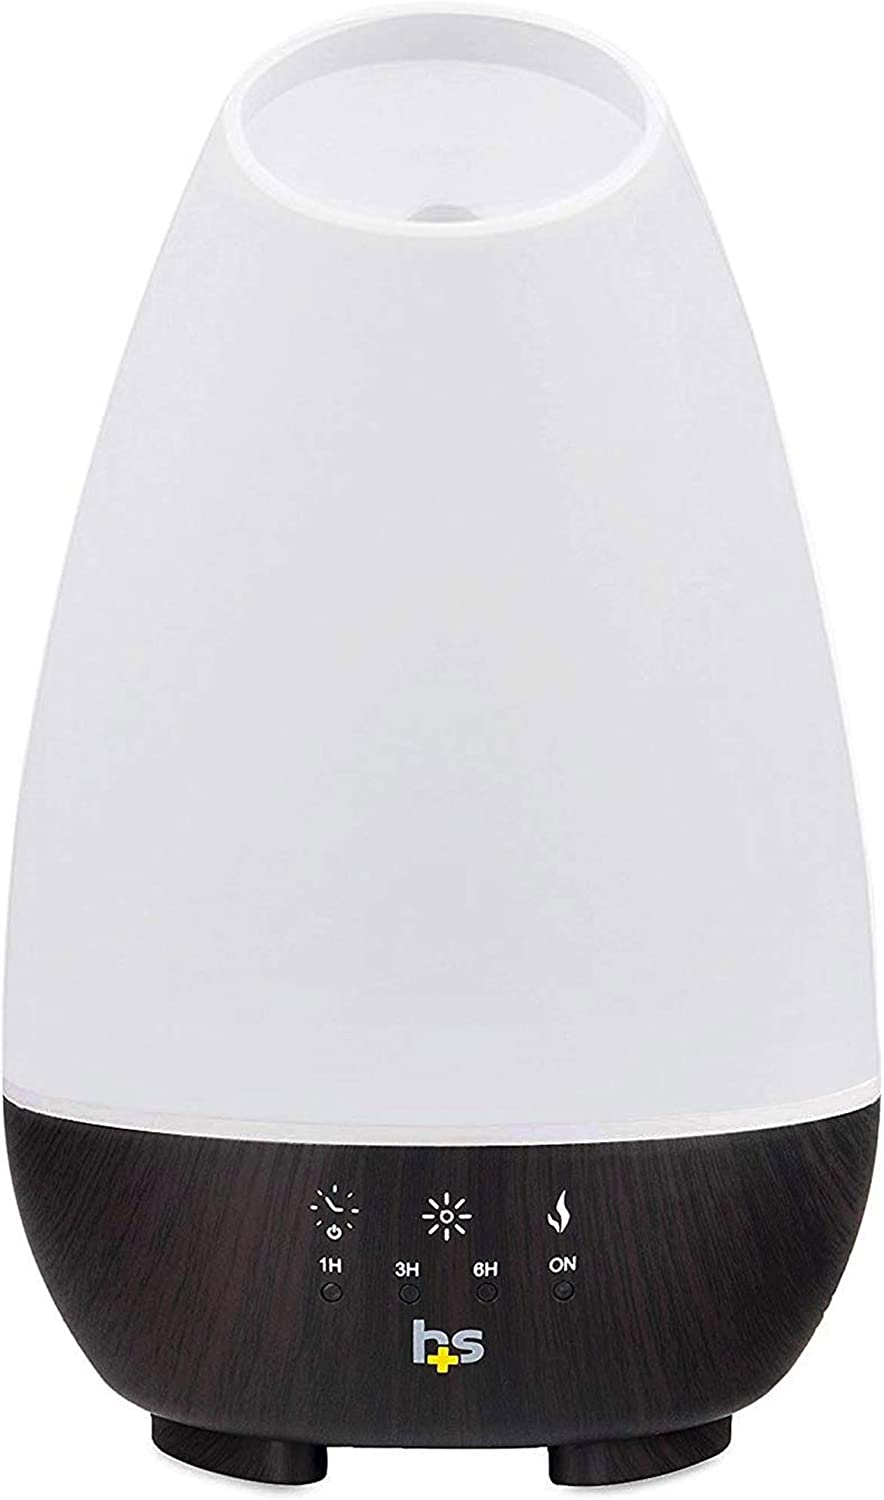 HealthSmart Aromatherapy Essential Oil Diffuser and Cool Mist Humidifier with 500ML Tank Ideal for Large Rooms Features Adjustable Timer, Mist Mode and 7 LED Light Colors, White, 40-500-190